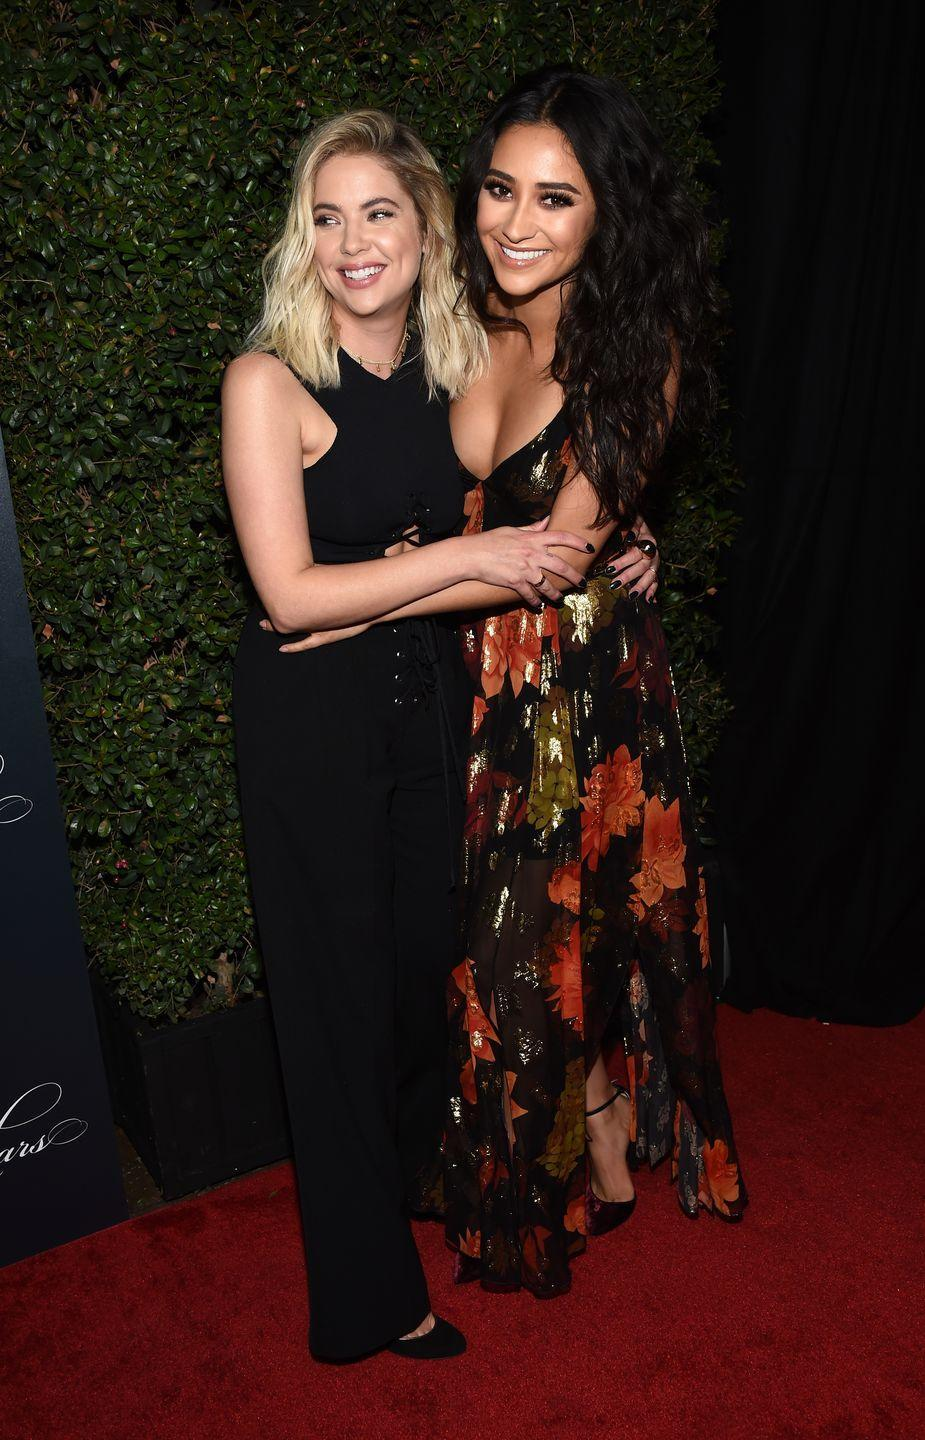 """<p>The on and offscreen BFFs met while they were filming their hit show, <em>Pretty Little Liars. </em>Since the show's premiere nine years ago, the two have managed to stay in touch despite busy schedules, often going on vacations with each other, attending Coachella, and creating their own unique friendship name, <a href=""""https://www.instagram.com/p/8GxGIBwrxf/"""" rel=""""nofollow noopener"""" target=""""_blank"""" data-ylk=""""slk:#buttahbenzo."""" class=""""link rapid-noclick-resp"""">#buttahbenzo.</a></p>"""